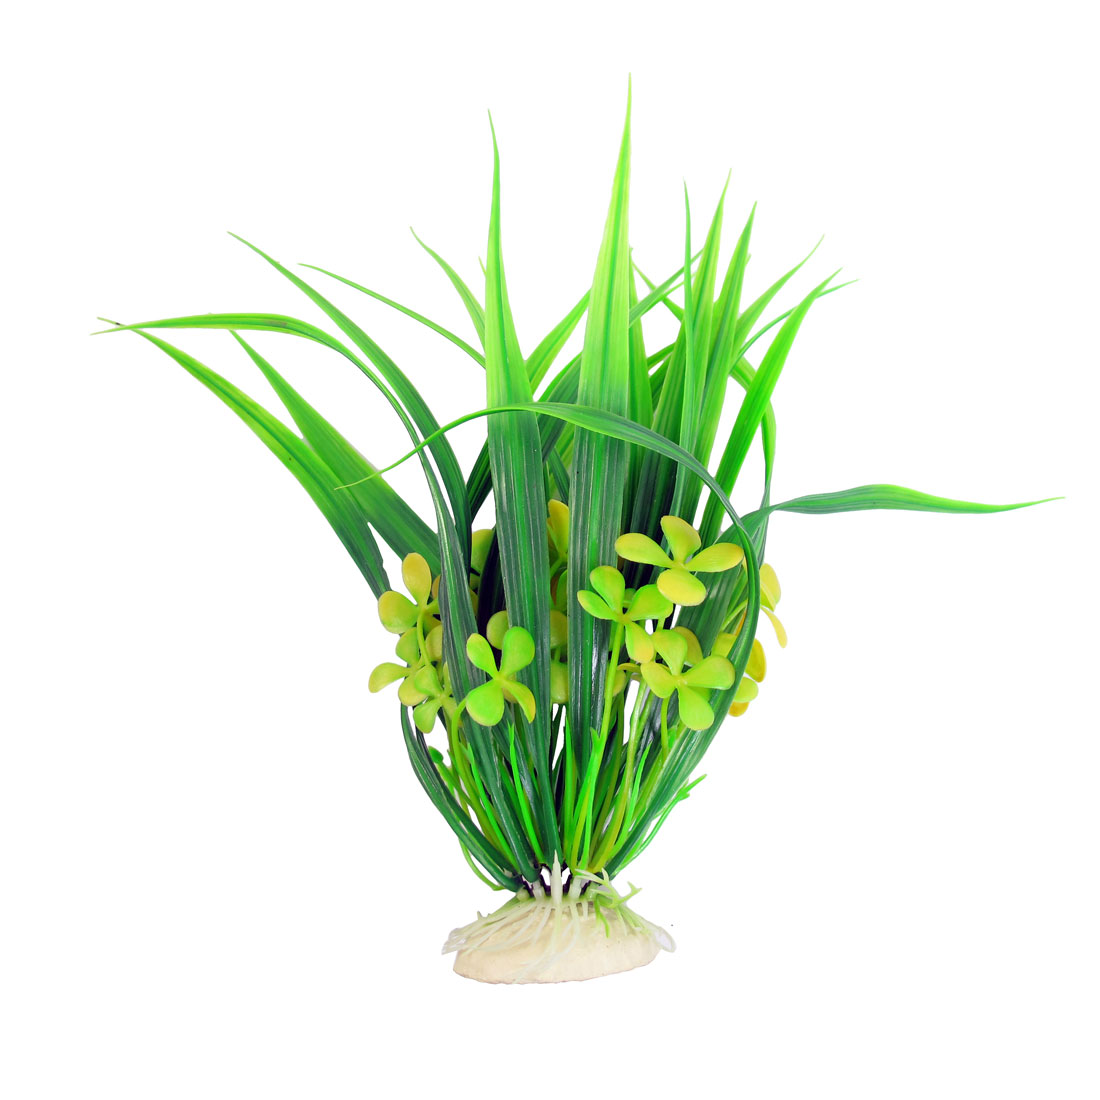 9-4-High-Yellow-Green-Simulation-Fish-Tank-Aquarium-Plastic-Plants-Landscaping